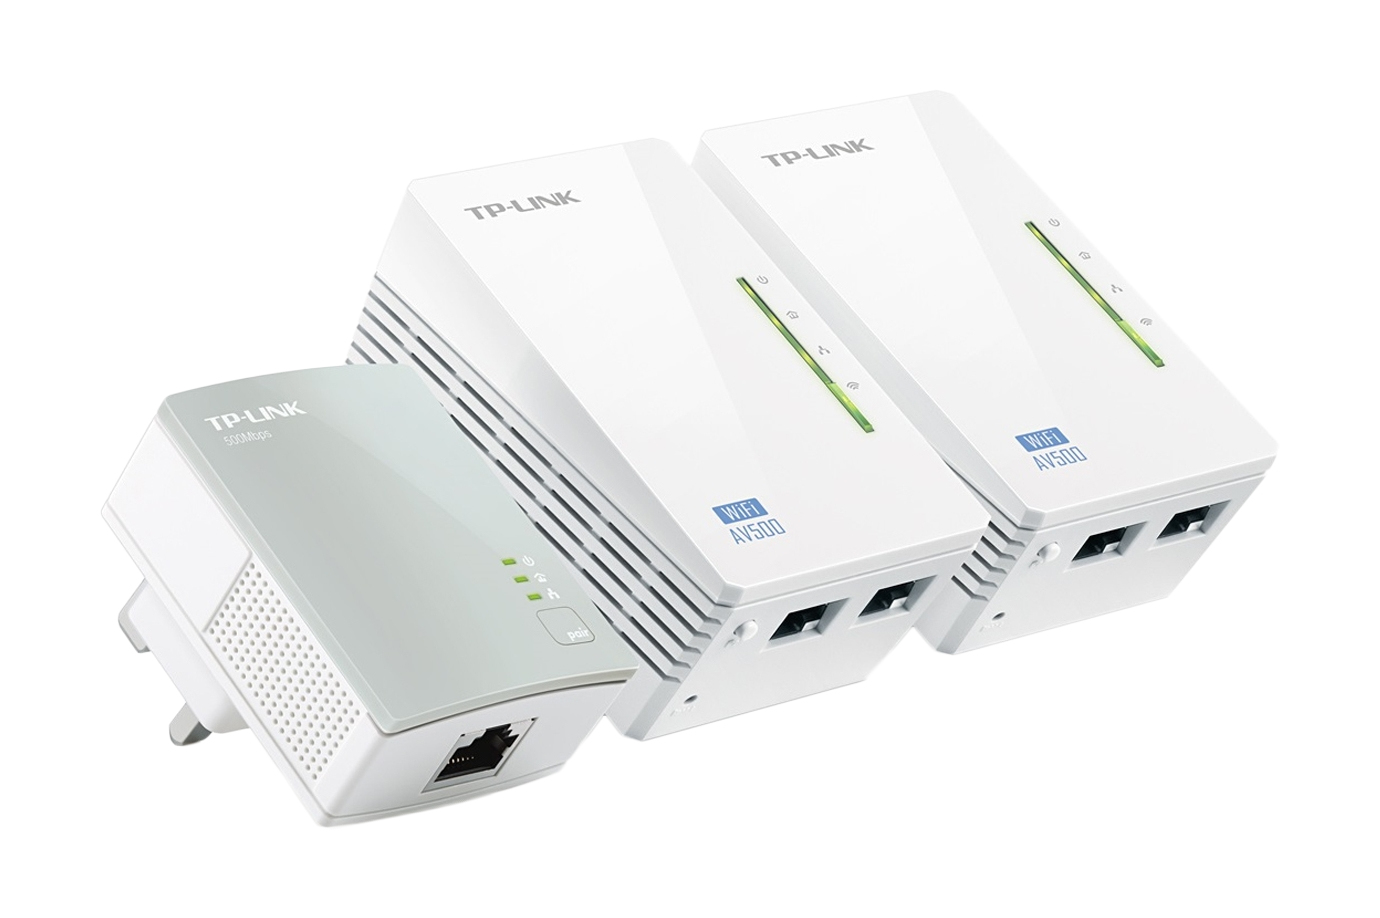 Powerline Universal Wi-Fi Range Extender, 2 Ethernet Ports, Network Kit Av500